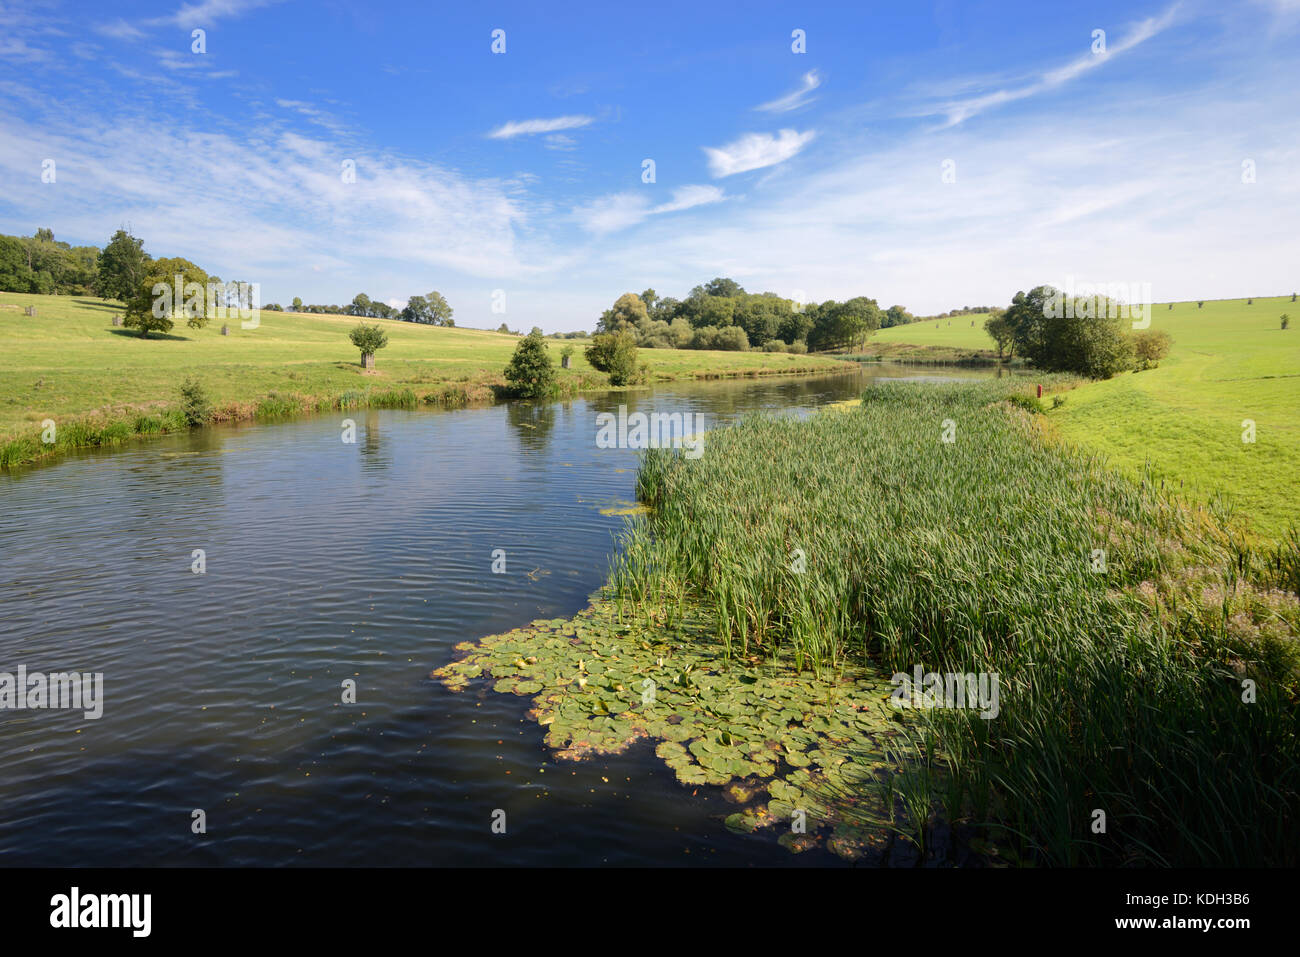 Quintessential English Landscape or Capability Brown Landscape and Lake at Compton Verney House, Warwickshire, England - Stock Image